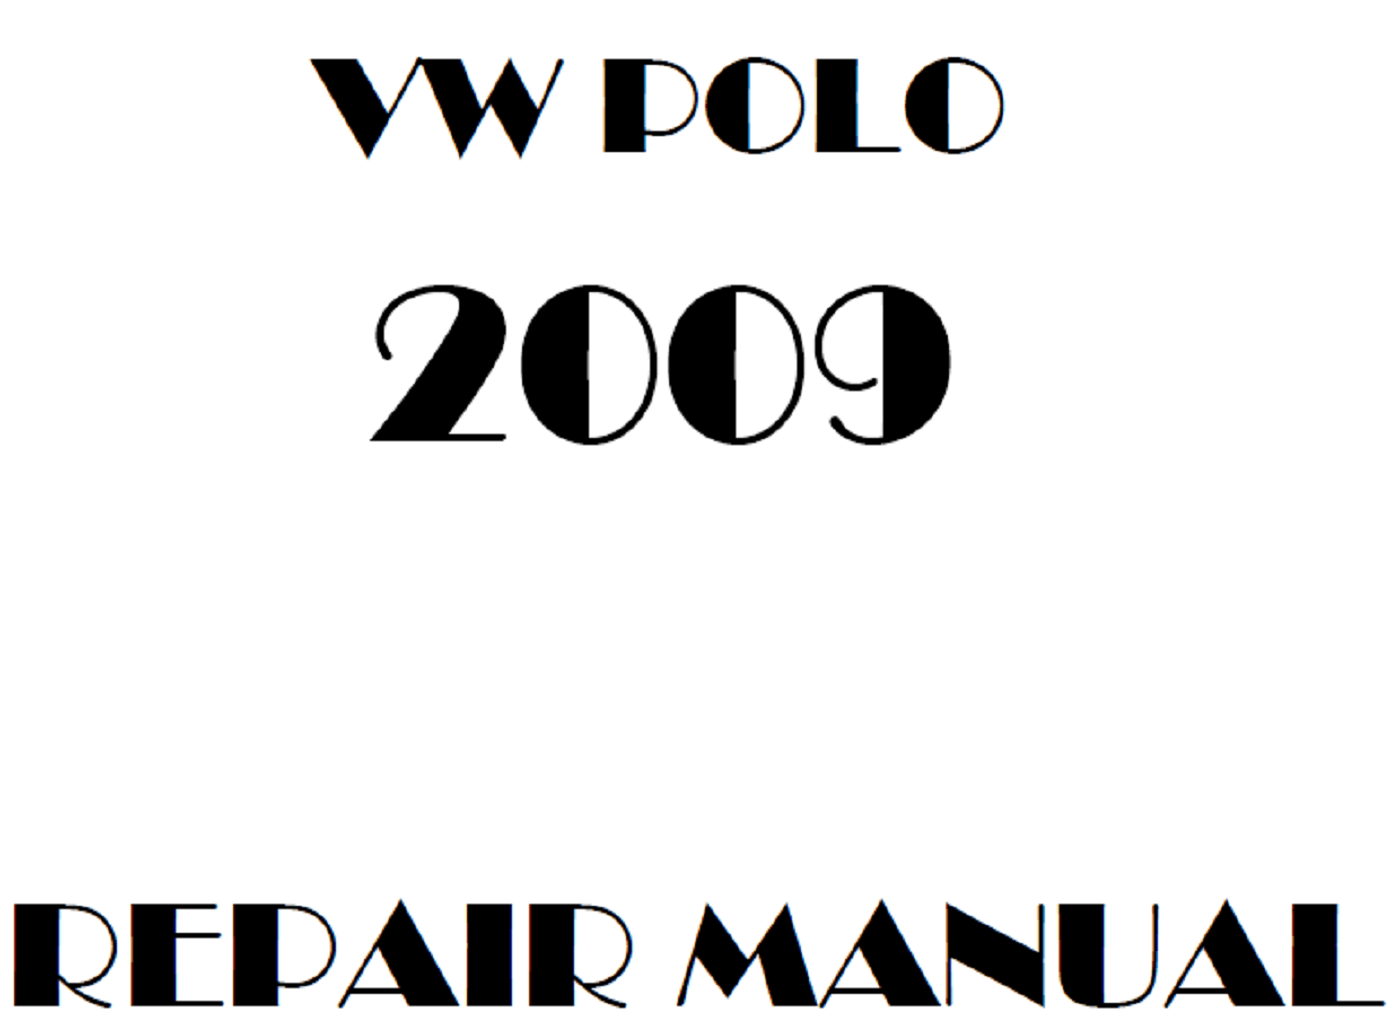 2009 Volkswagen Polo repair manual